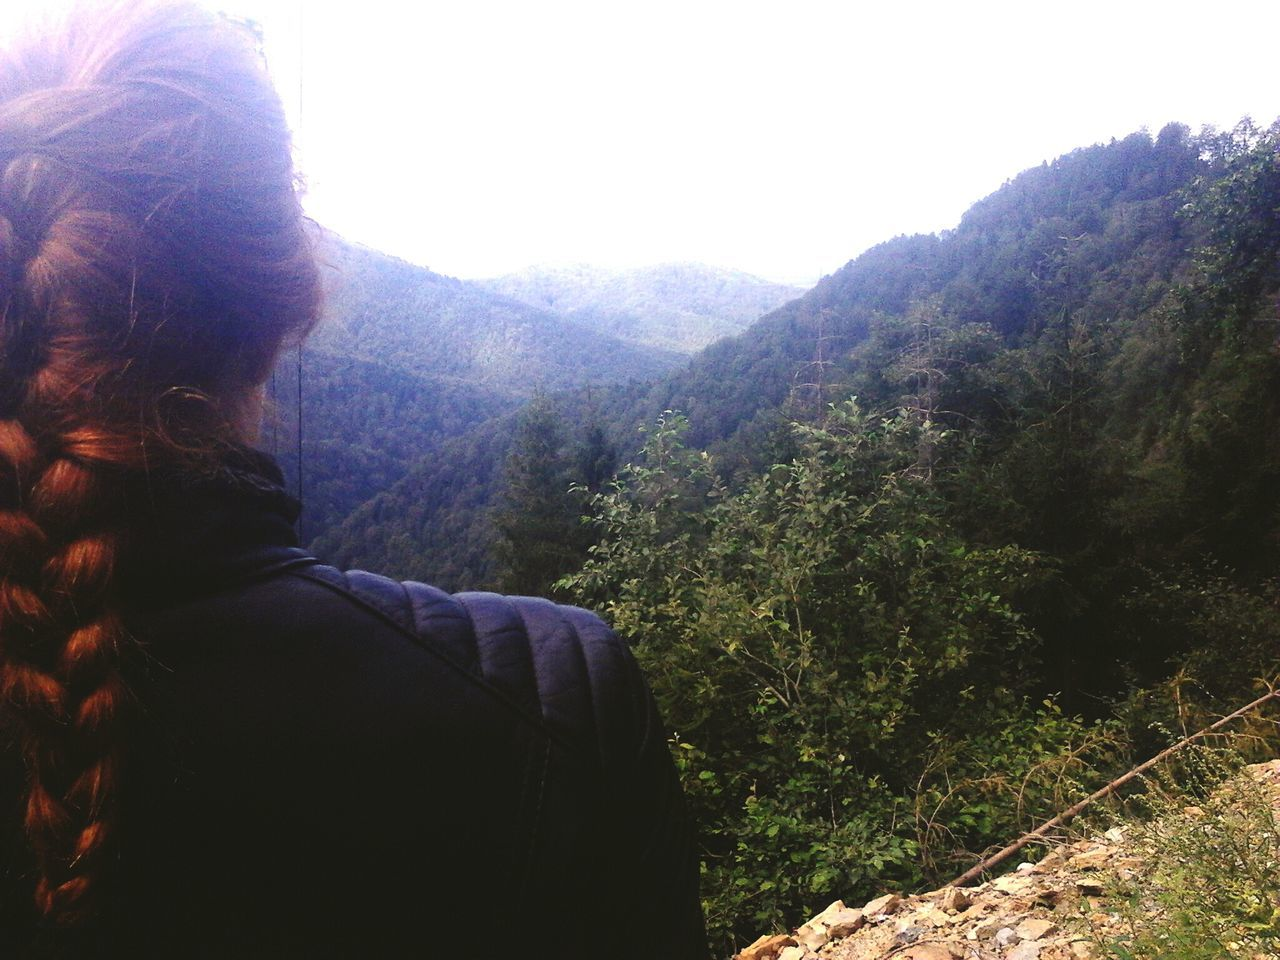 One Person Rear View Tree Beauty In Nature Mountain Landscape Nature People Outdoors Redhead Trip Photos Motorcyclepeople Motorcycletrip